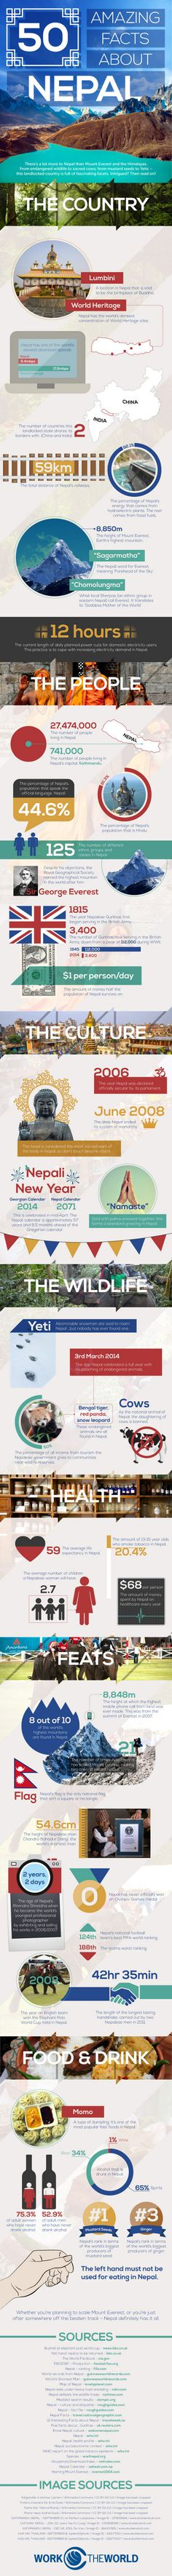 50 Interesting Facts About #Nepal #infographic #travel